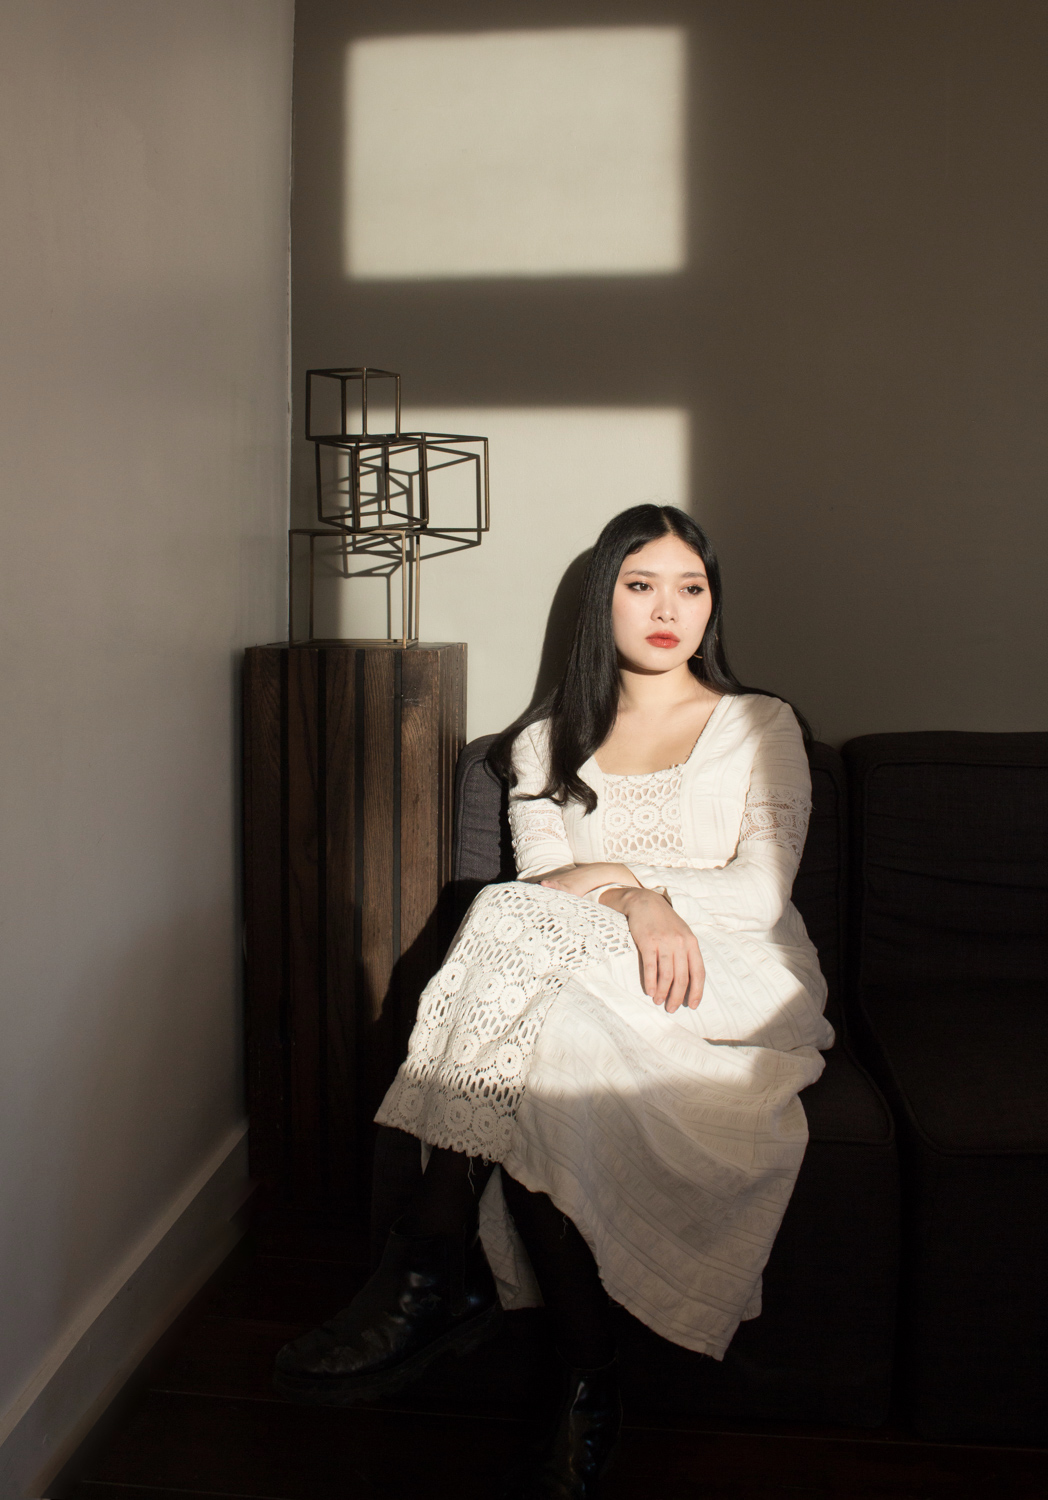 INTERVIEW WITH FAYE WEI WEI